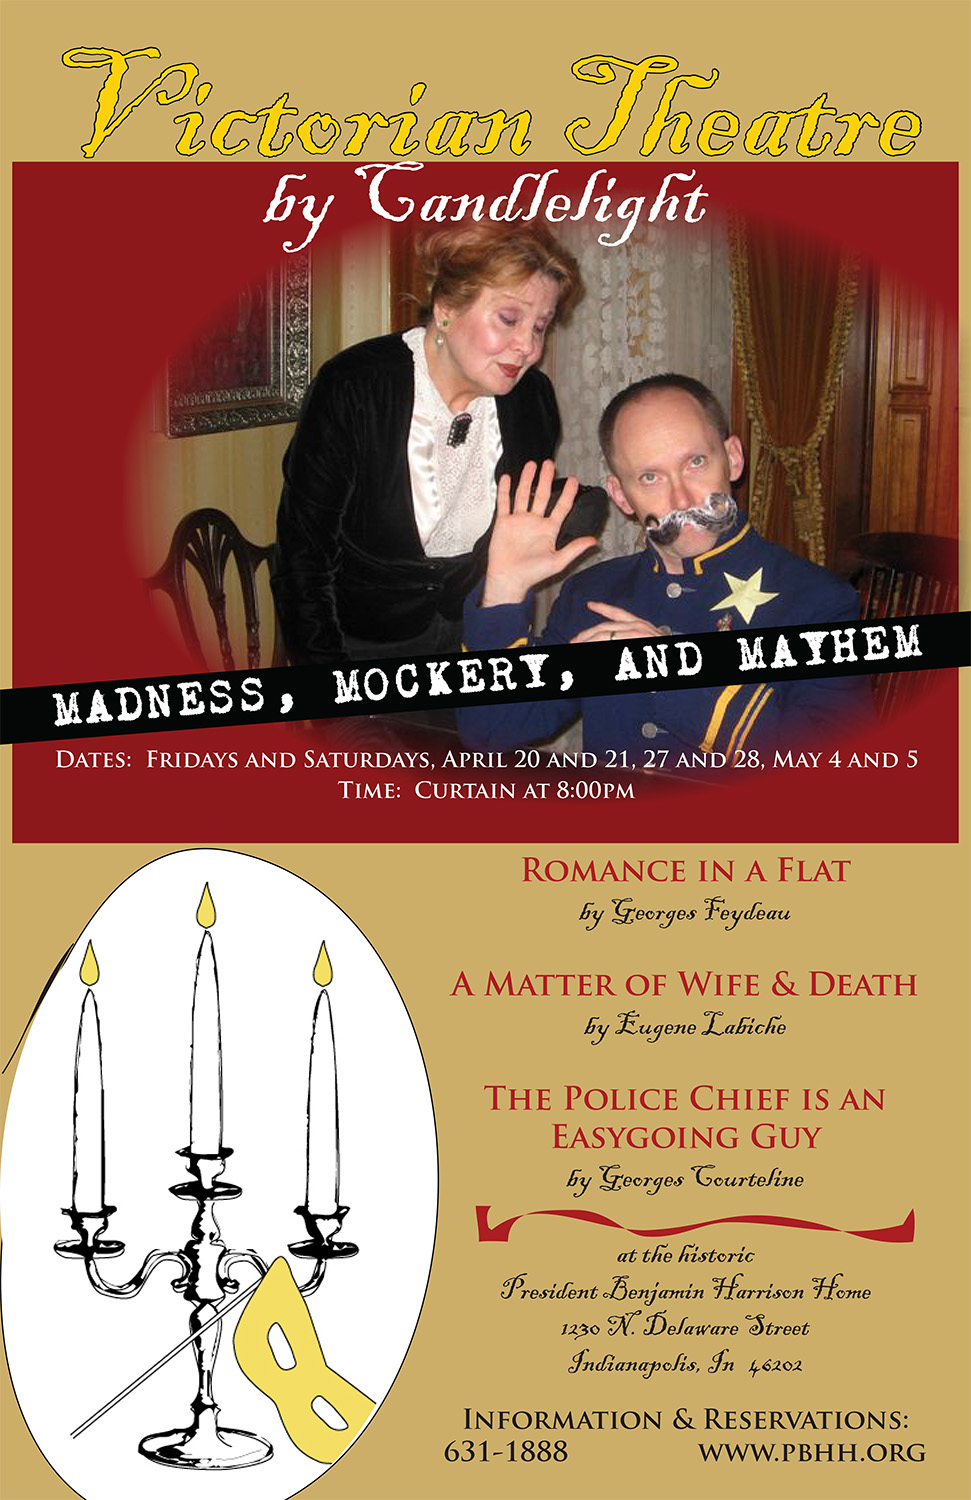 Photographic image of a man making a silly face while a woman stands behind him pursing her lips. Text reads: Madness, Mockery, and Mayhem.